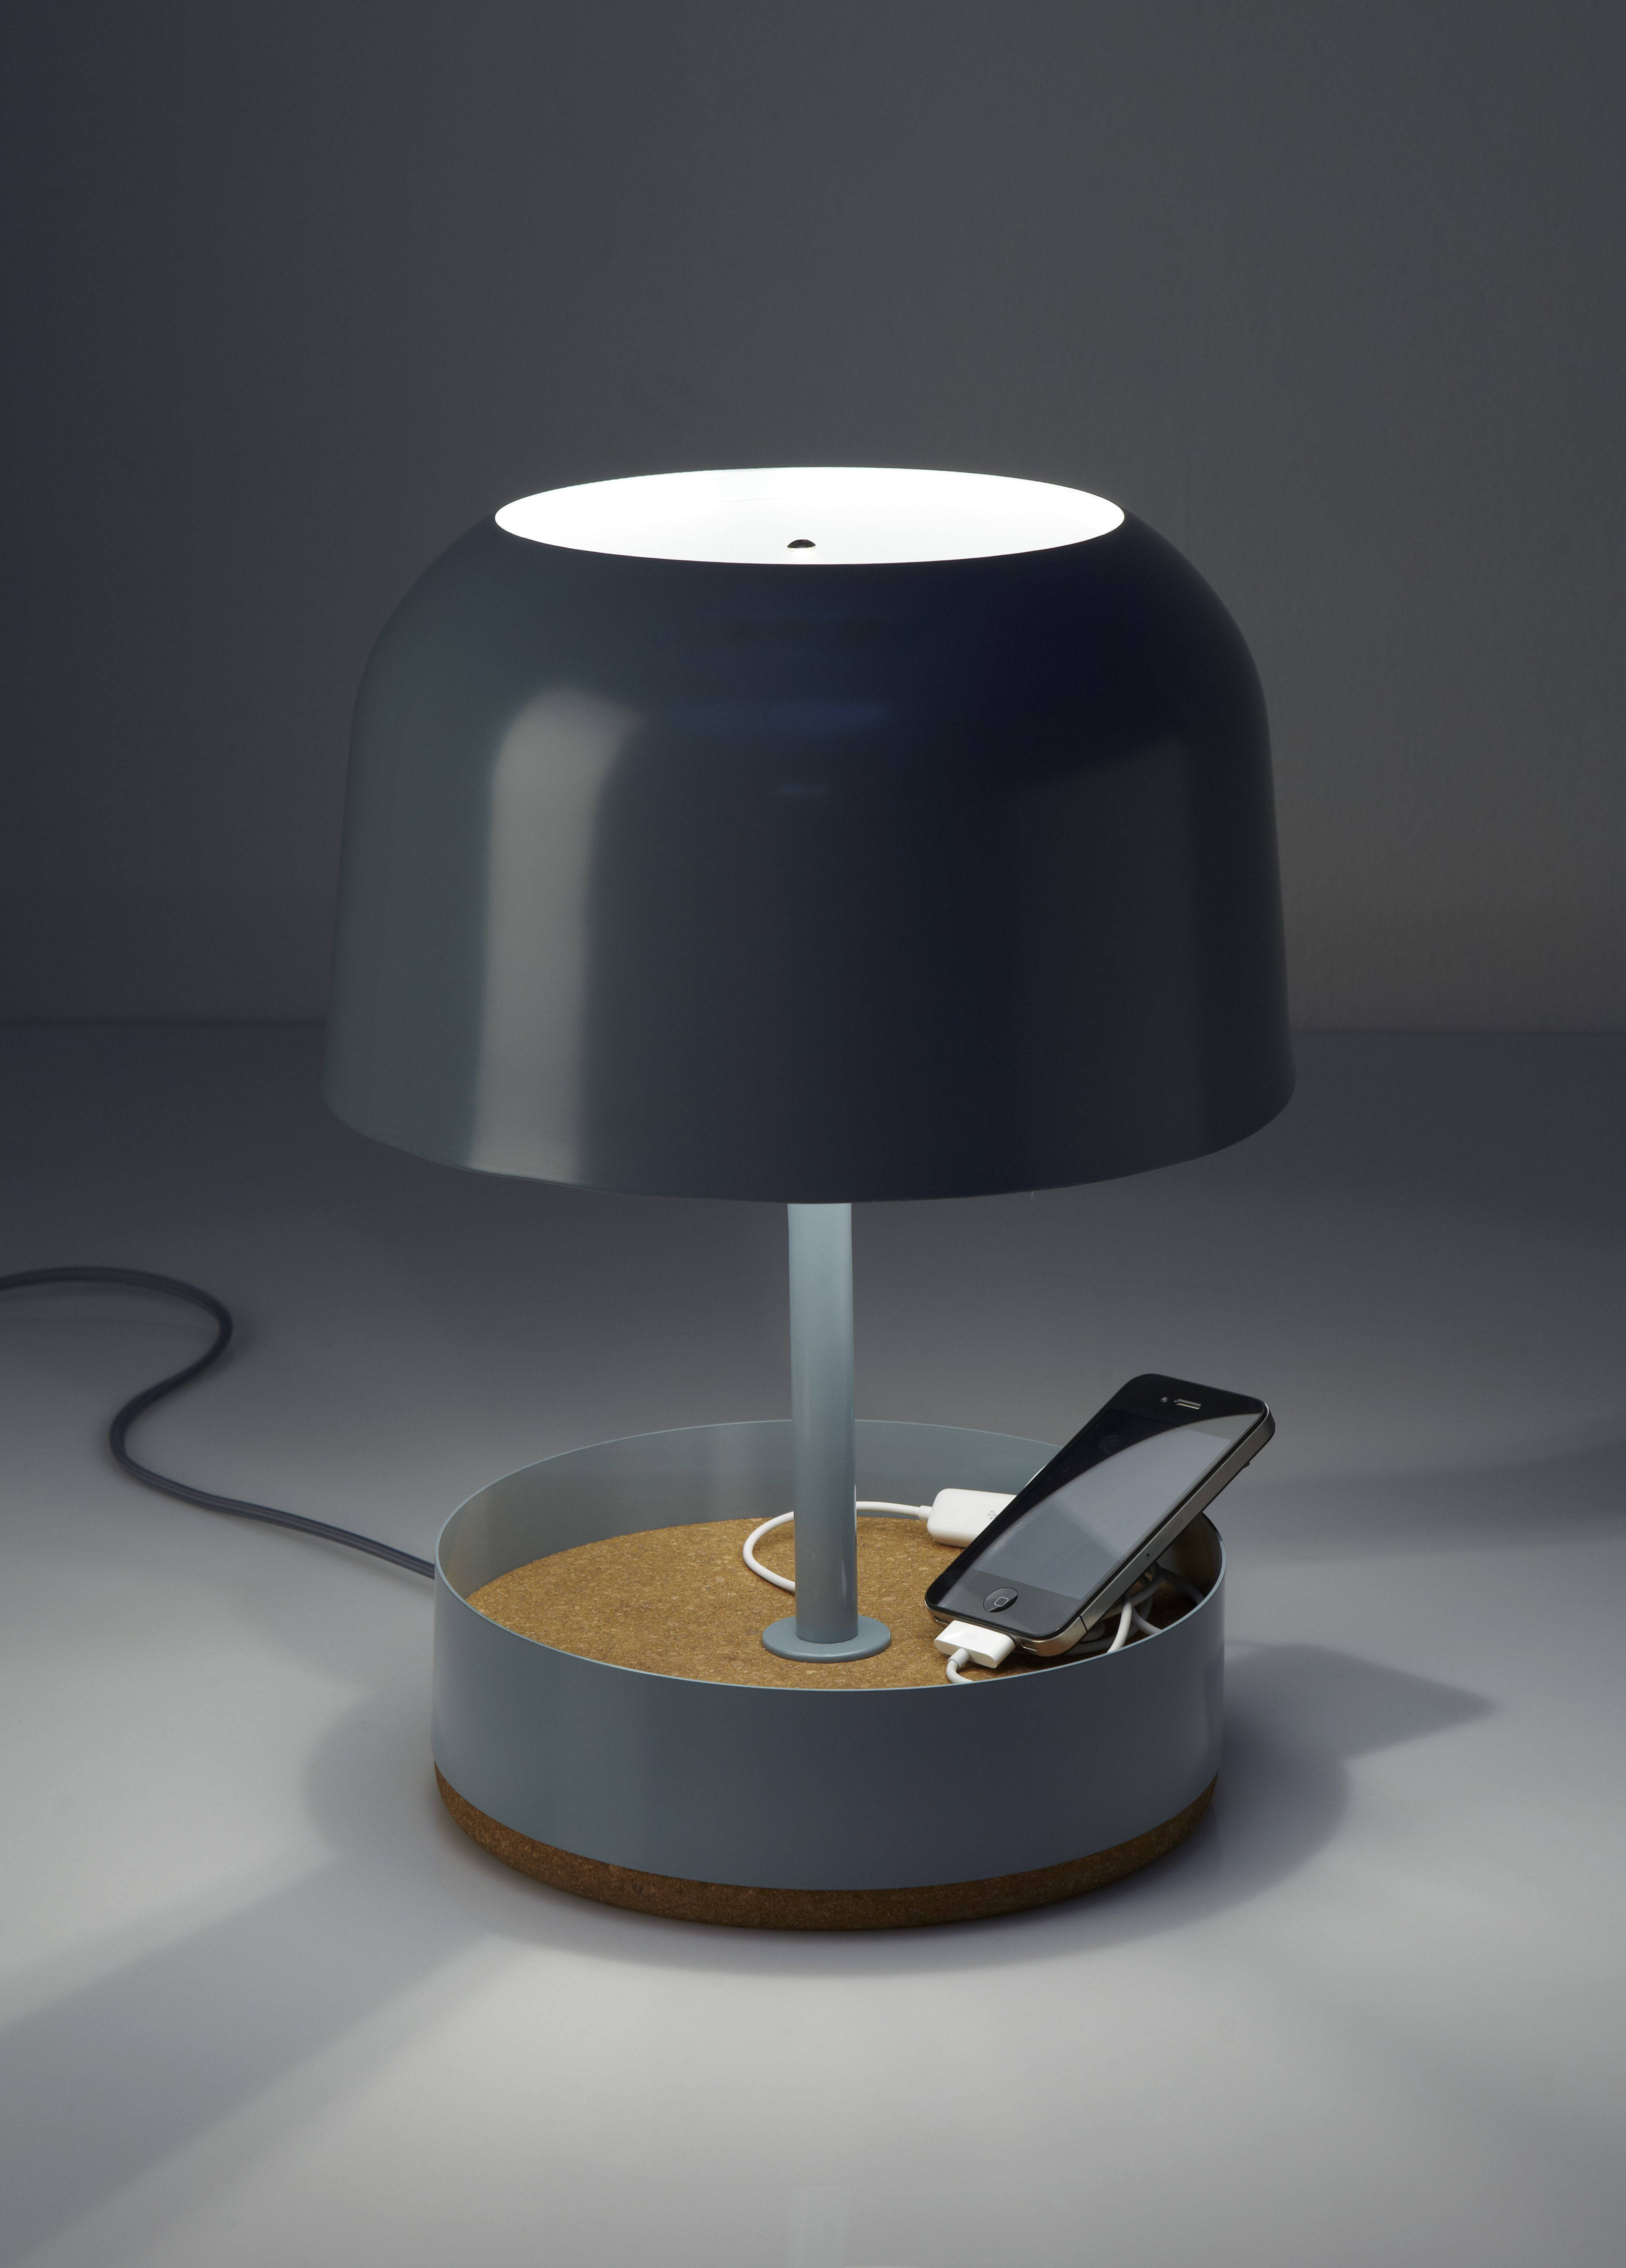 lighting table lamps hodge podge usb table lamp with usb port. Black Bedroom Furniture Sets. Home Design Ideas